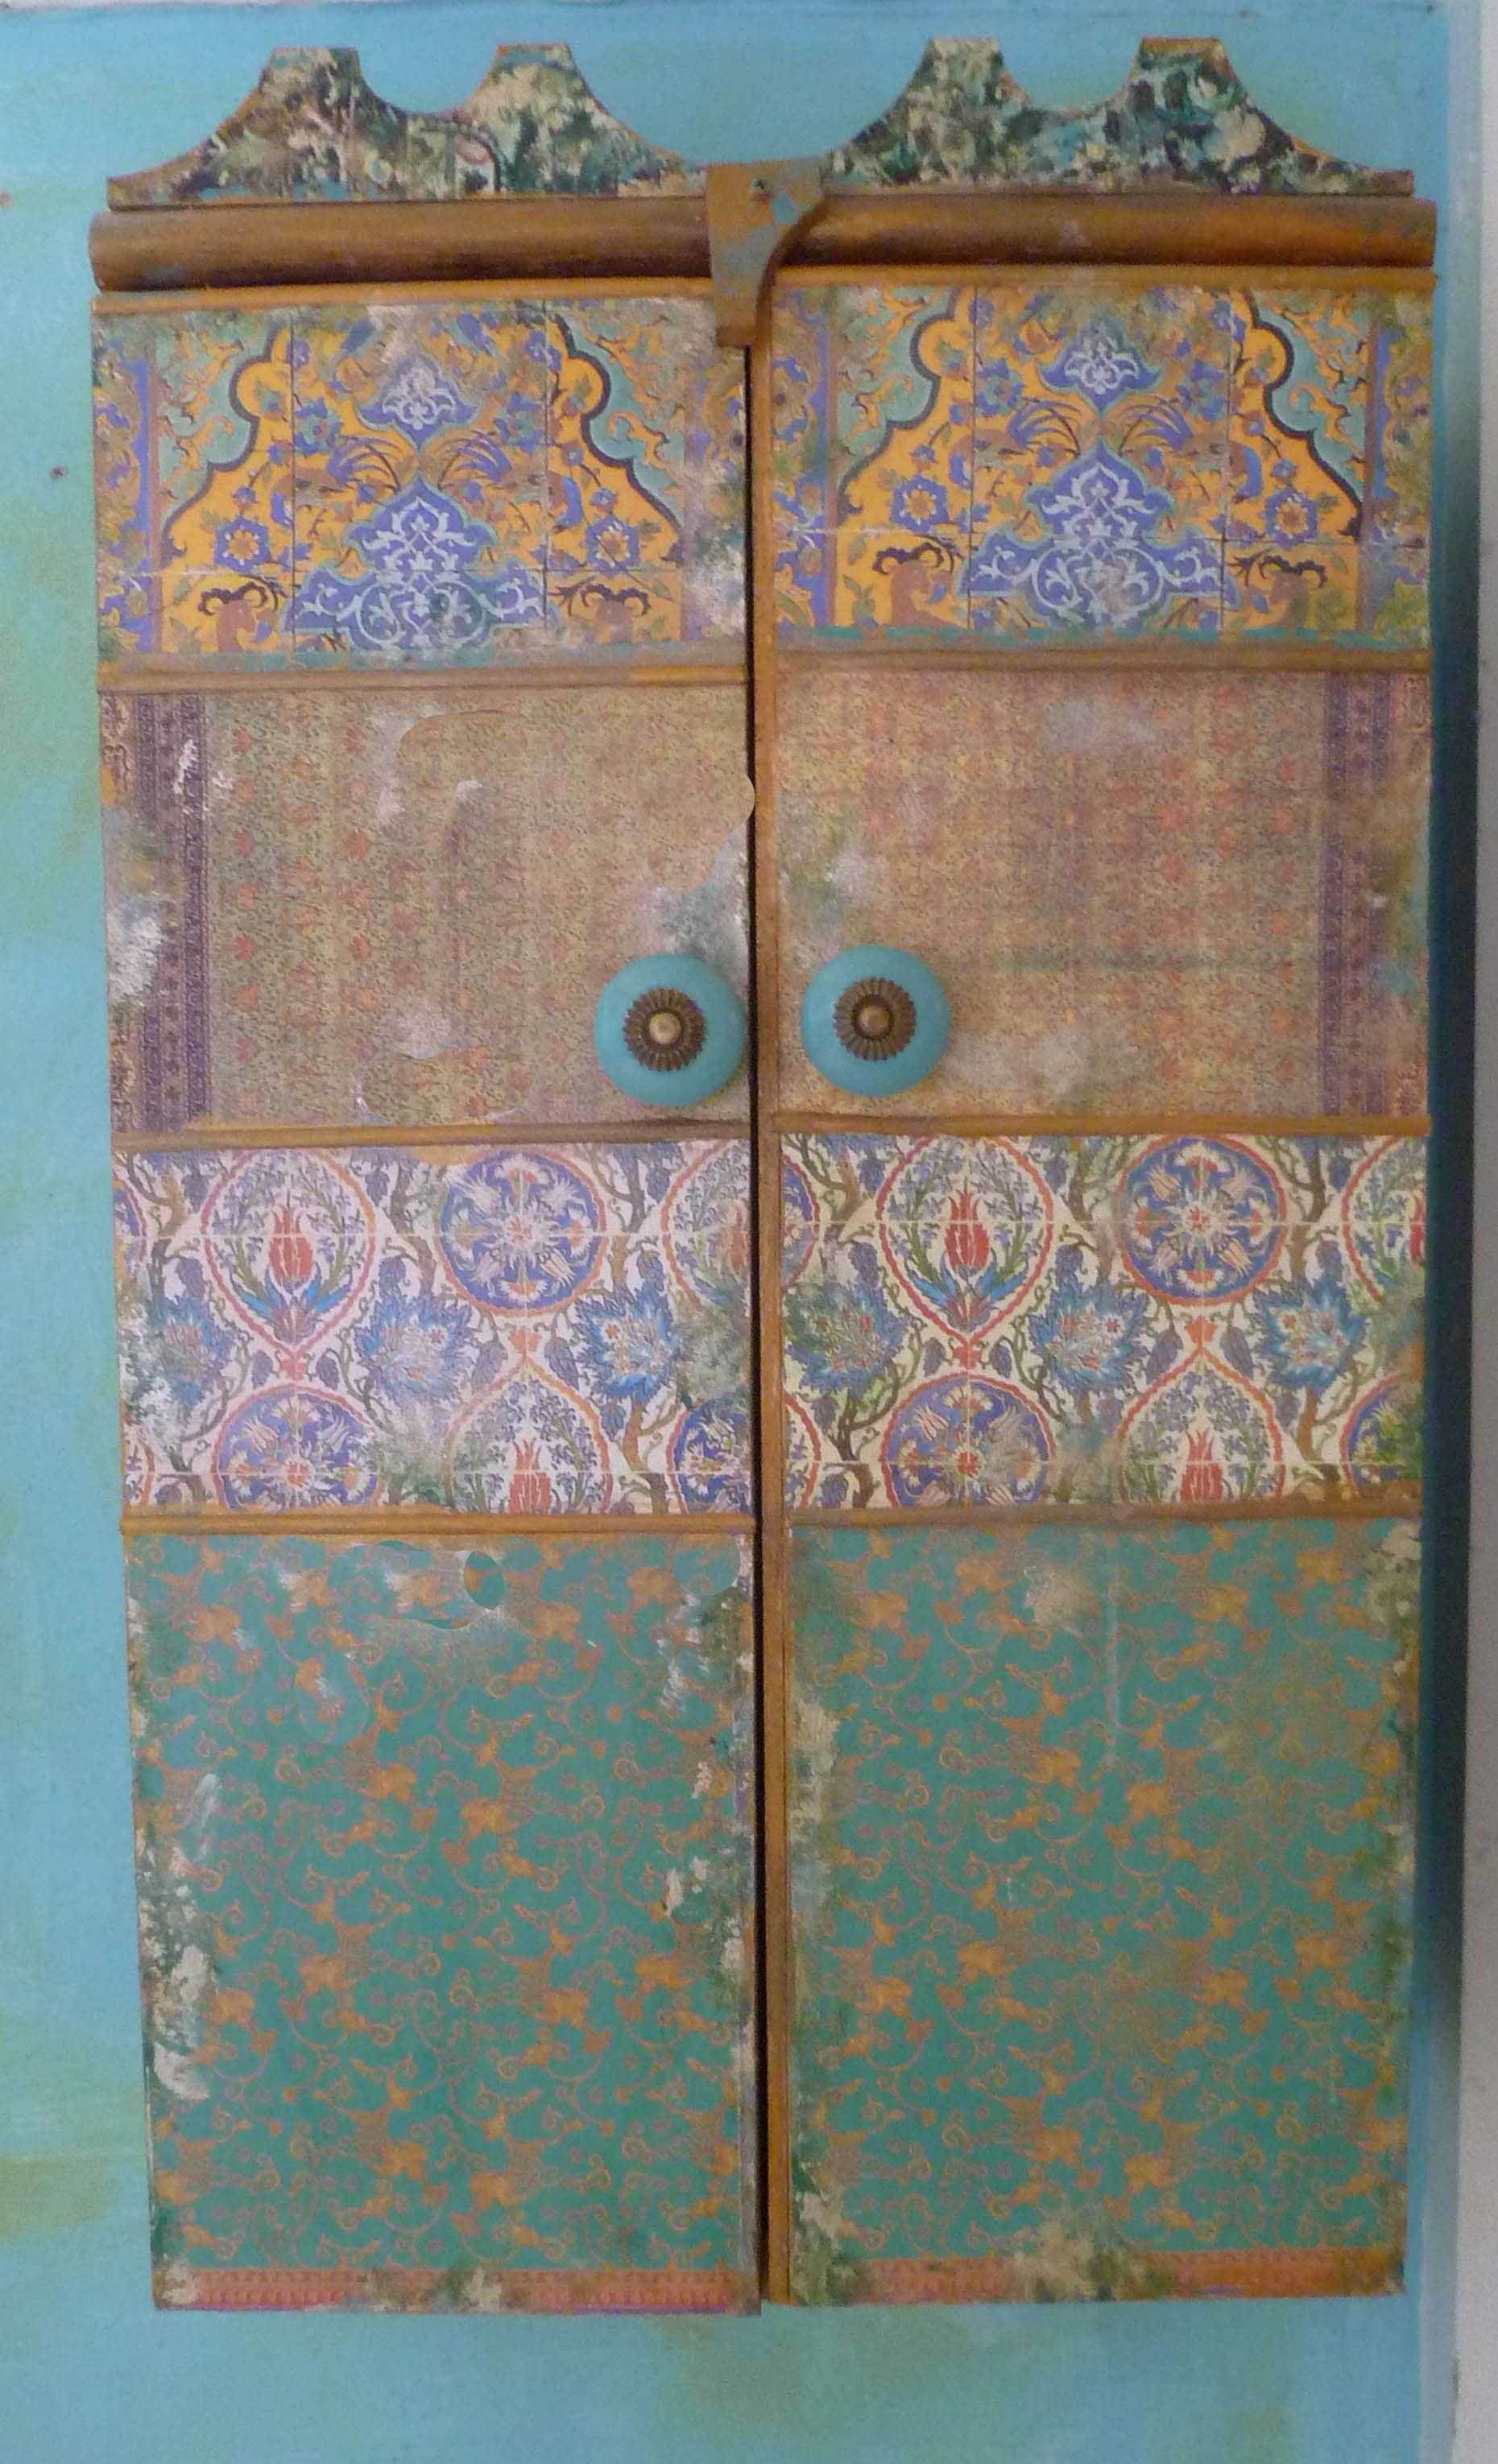 Moroccan inspired cabinets are made in the decoupage technique, with many layers of varnish, distressed with acrylic paint.